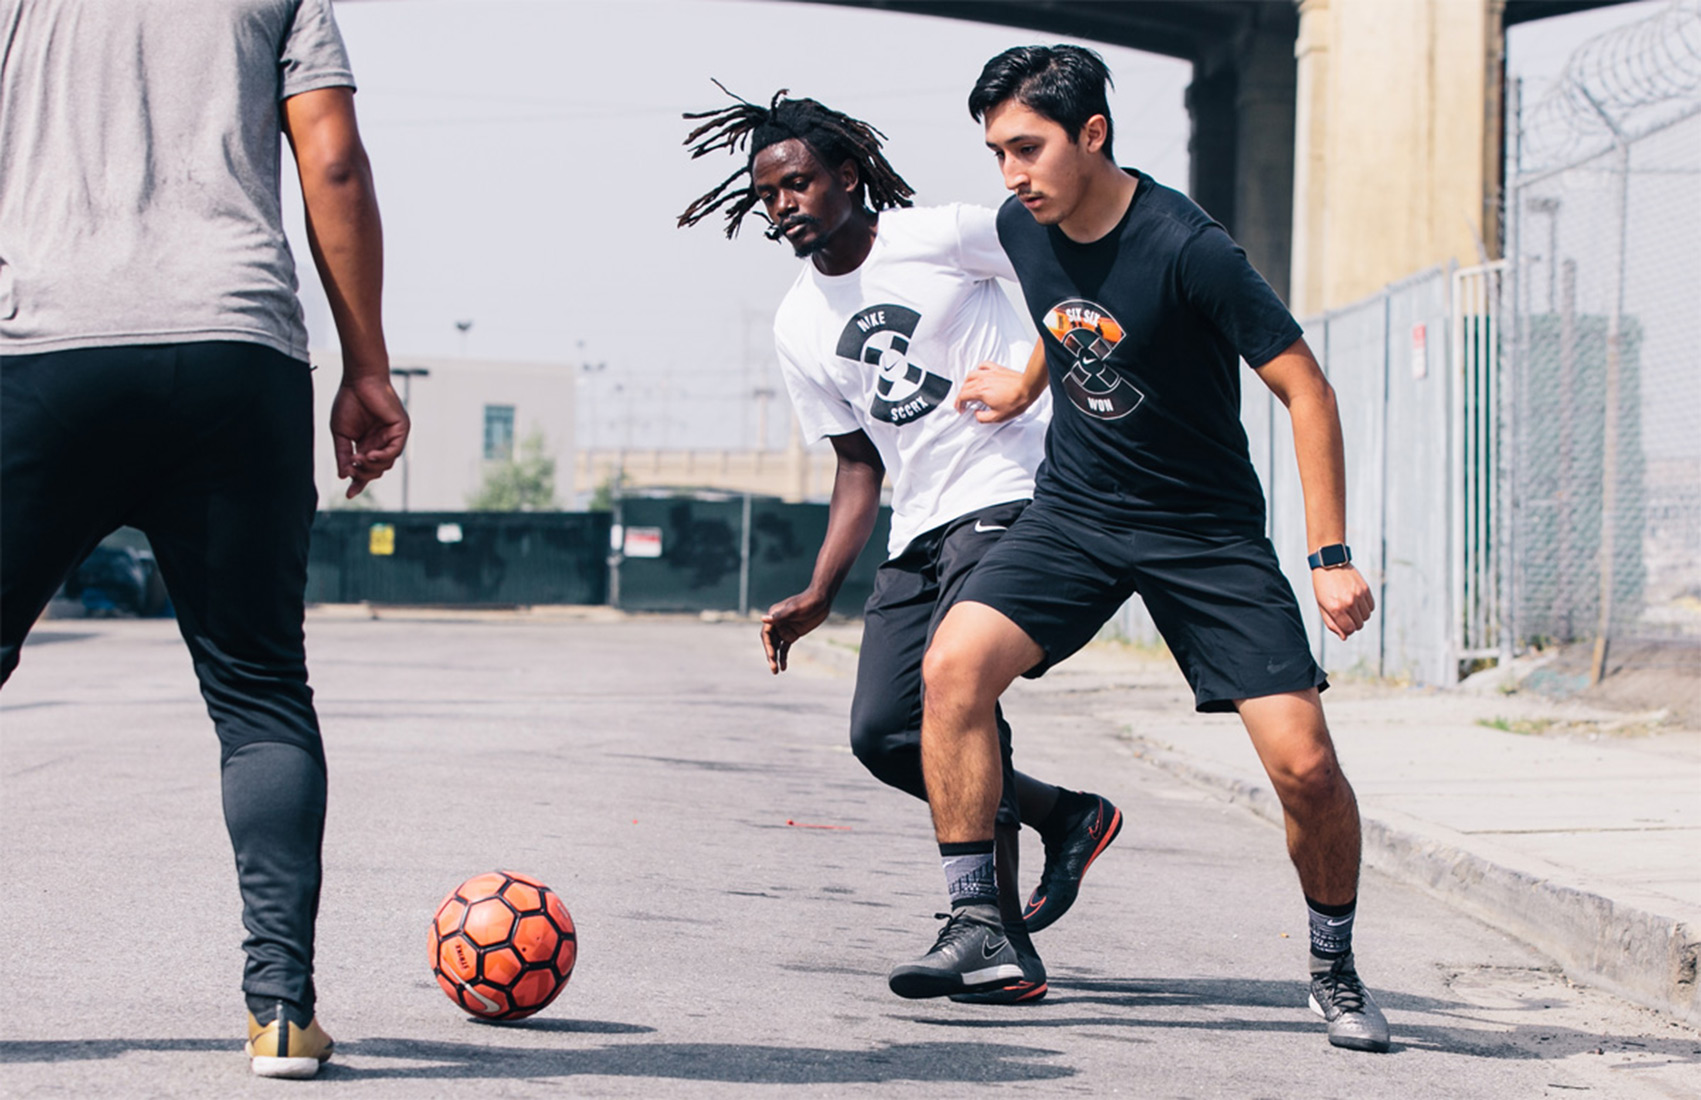 Los Angeles street soccer